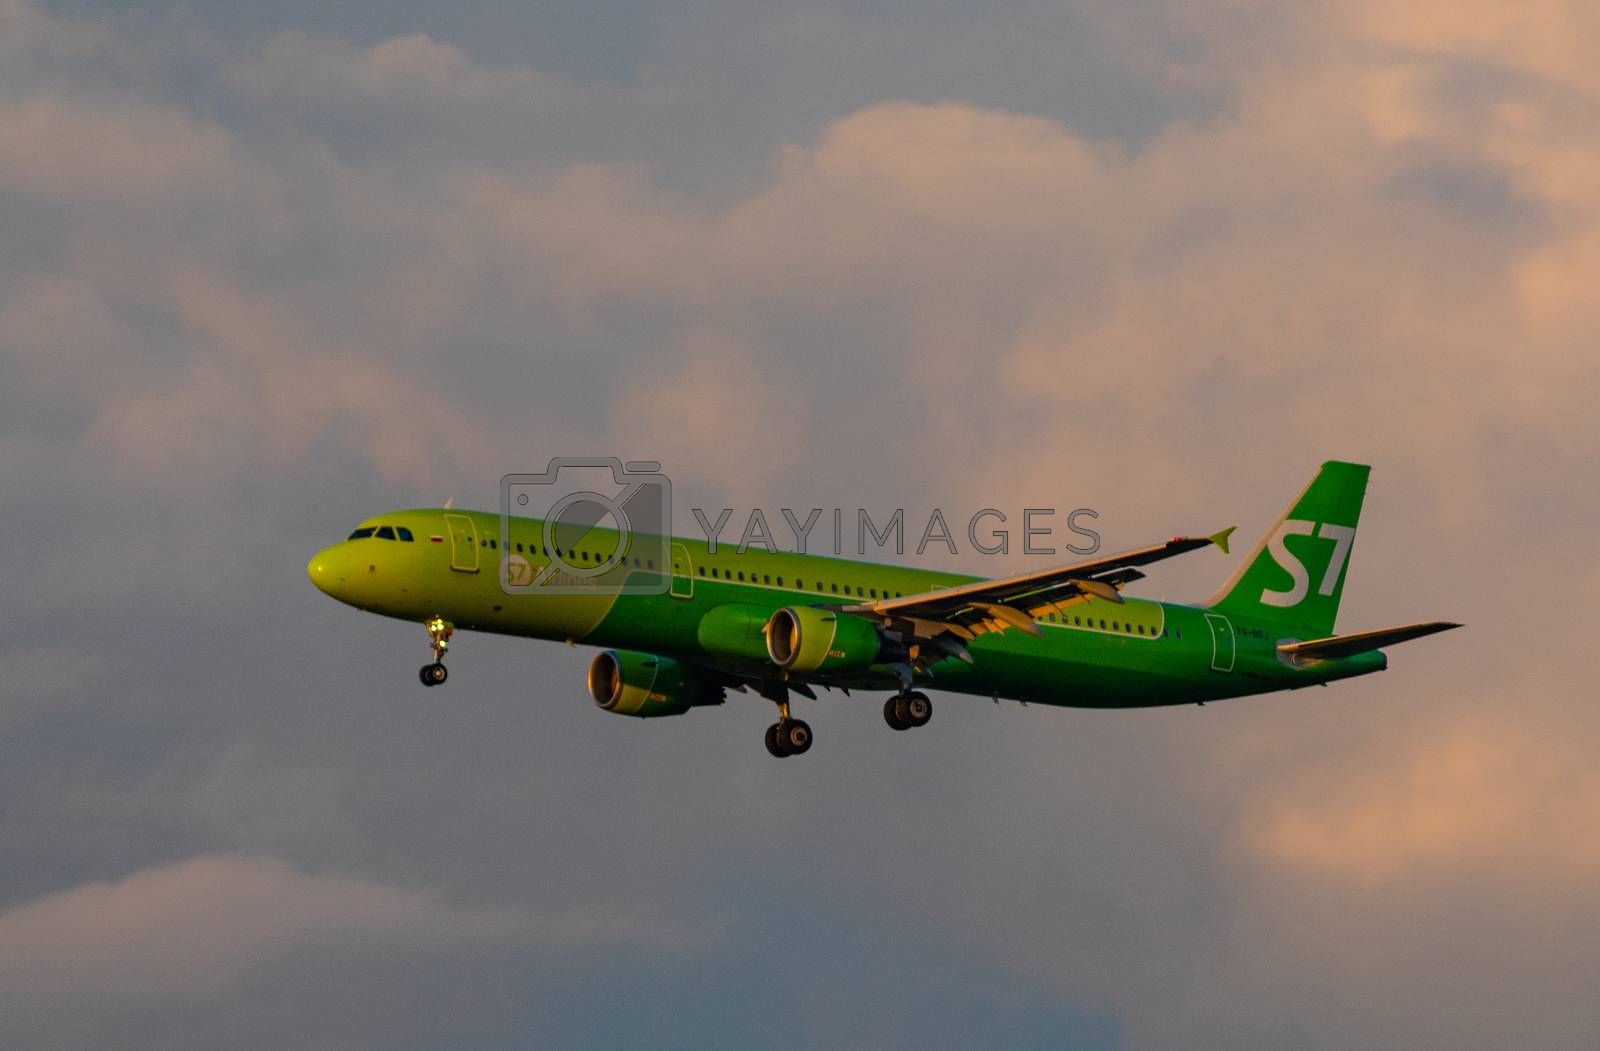 8 JULY 2018 Russia, Moscow. The aircraft Airbus A321 S7 Airlines is landing at the Domodedovo airport